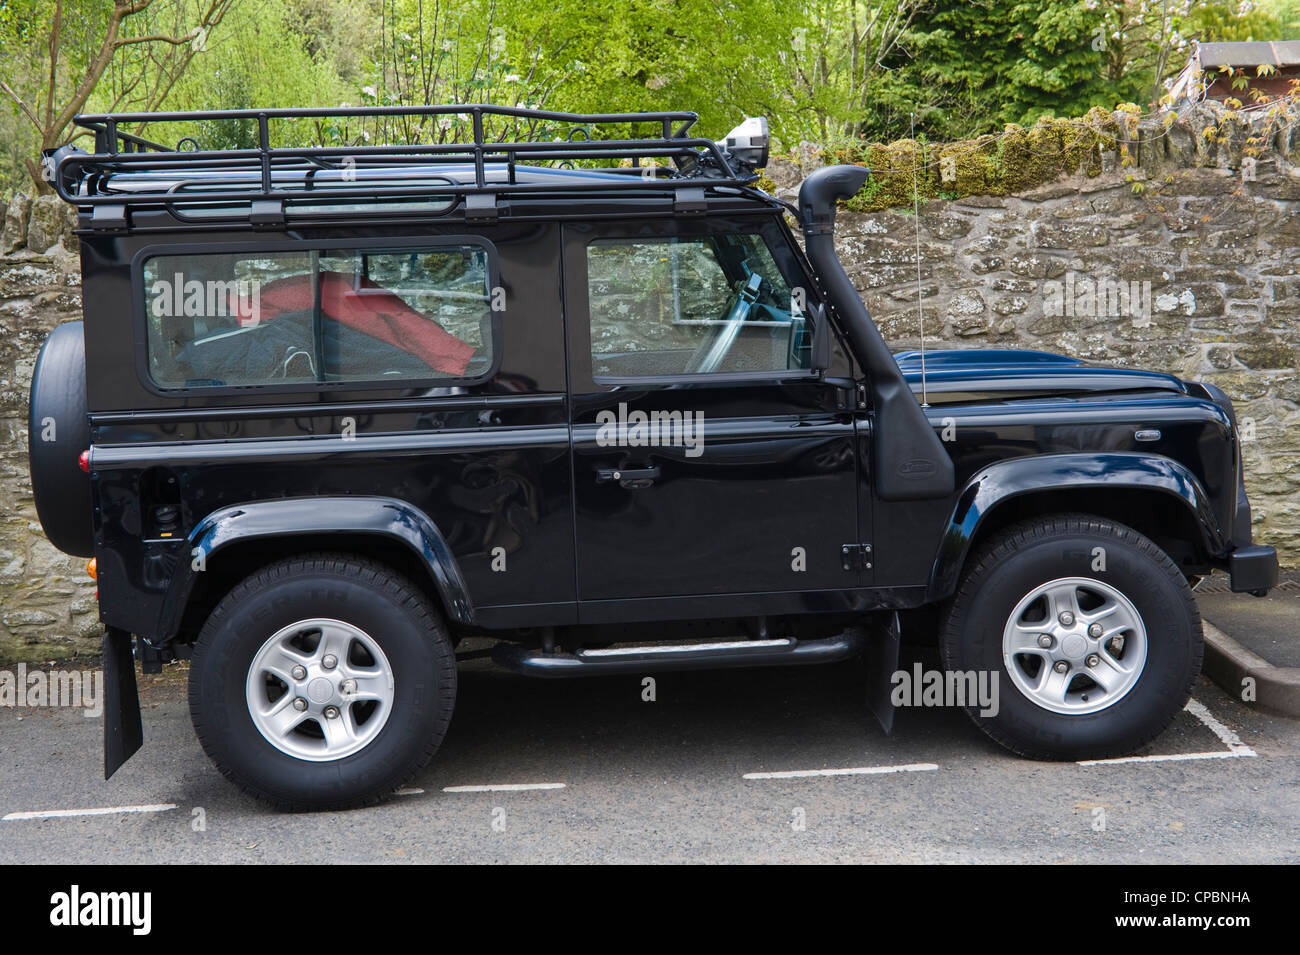 black land rover defender 90 2 4tdci 4x4 with safari snorkel and roof stock photo royalty free. Black Bedroom Furniture Sets. Home Design Ideas